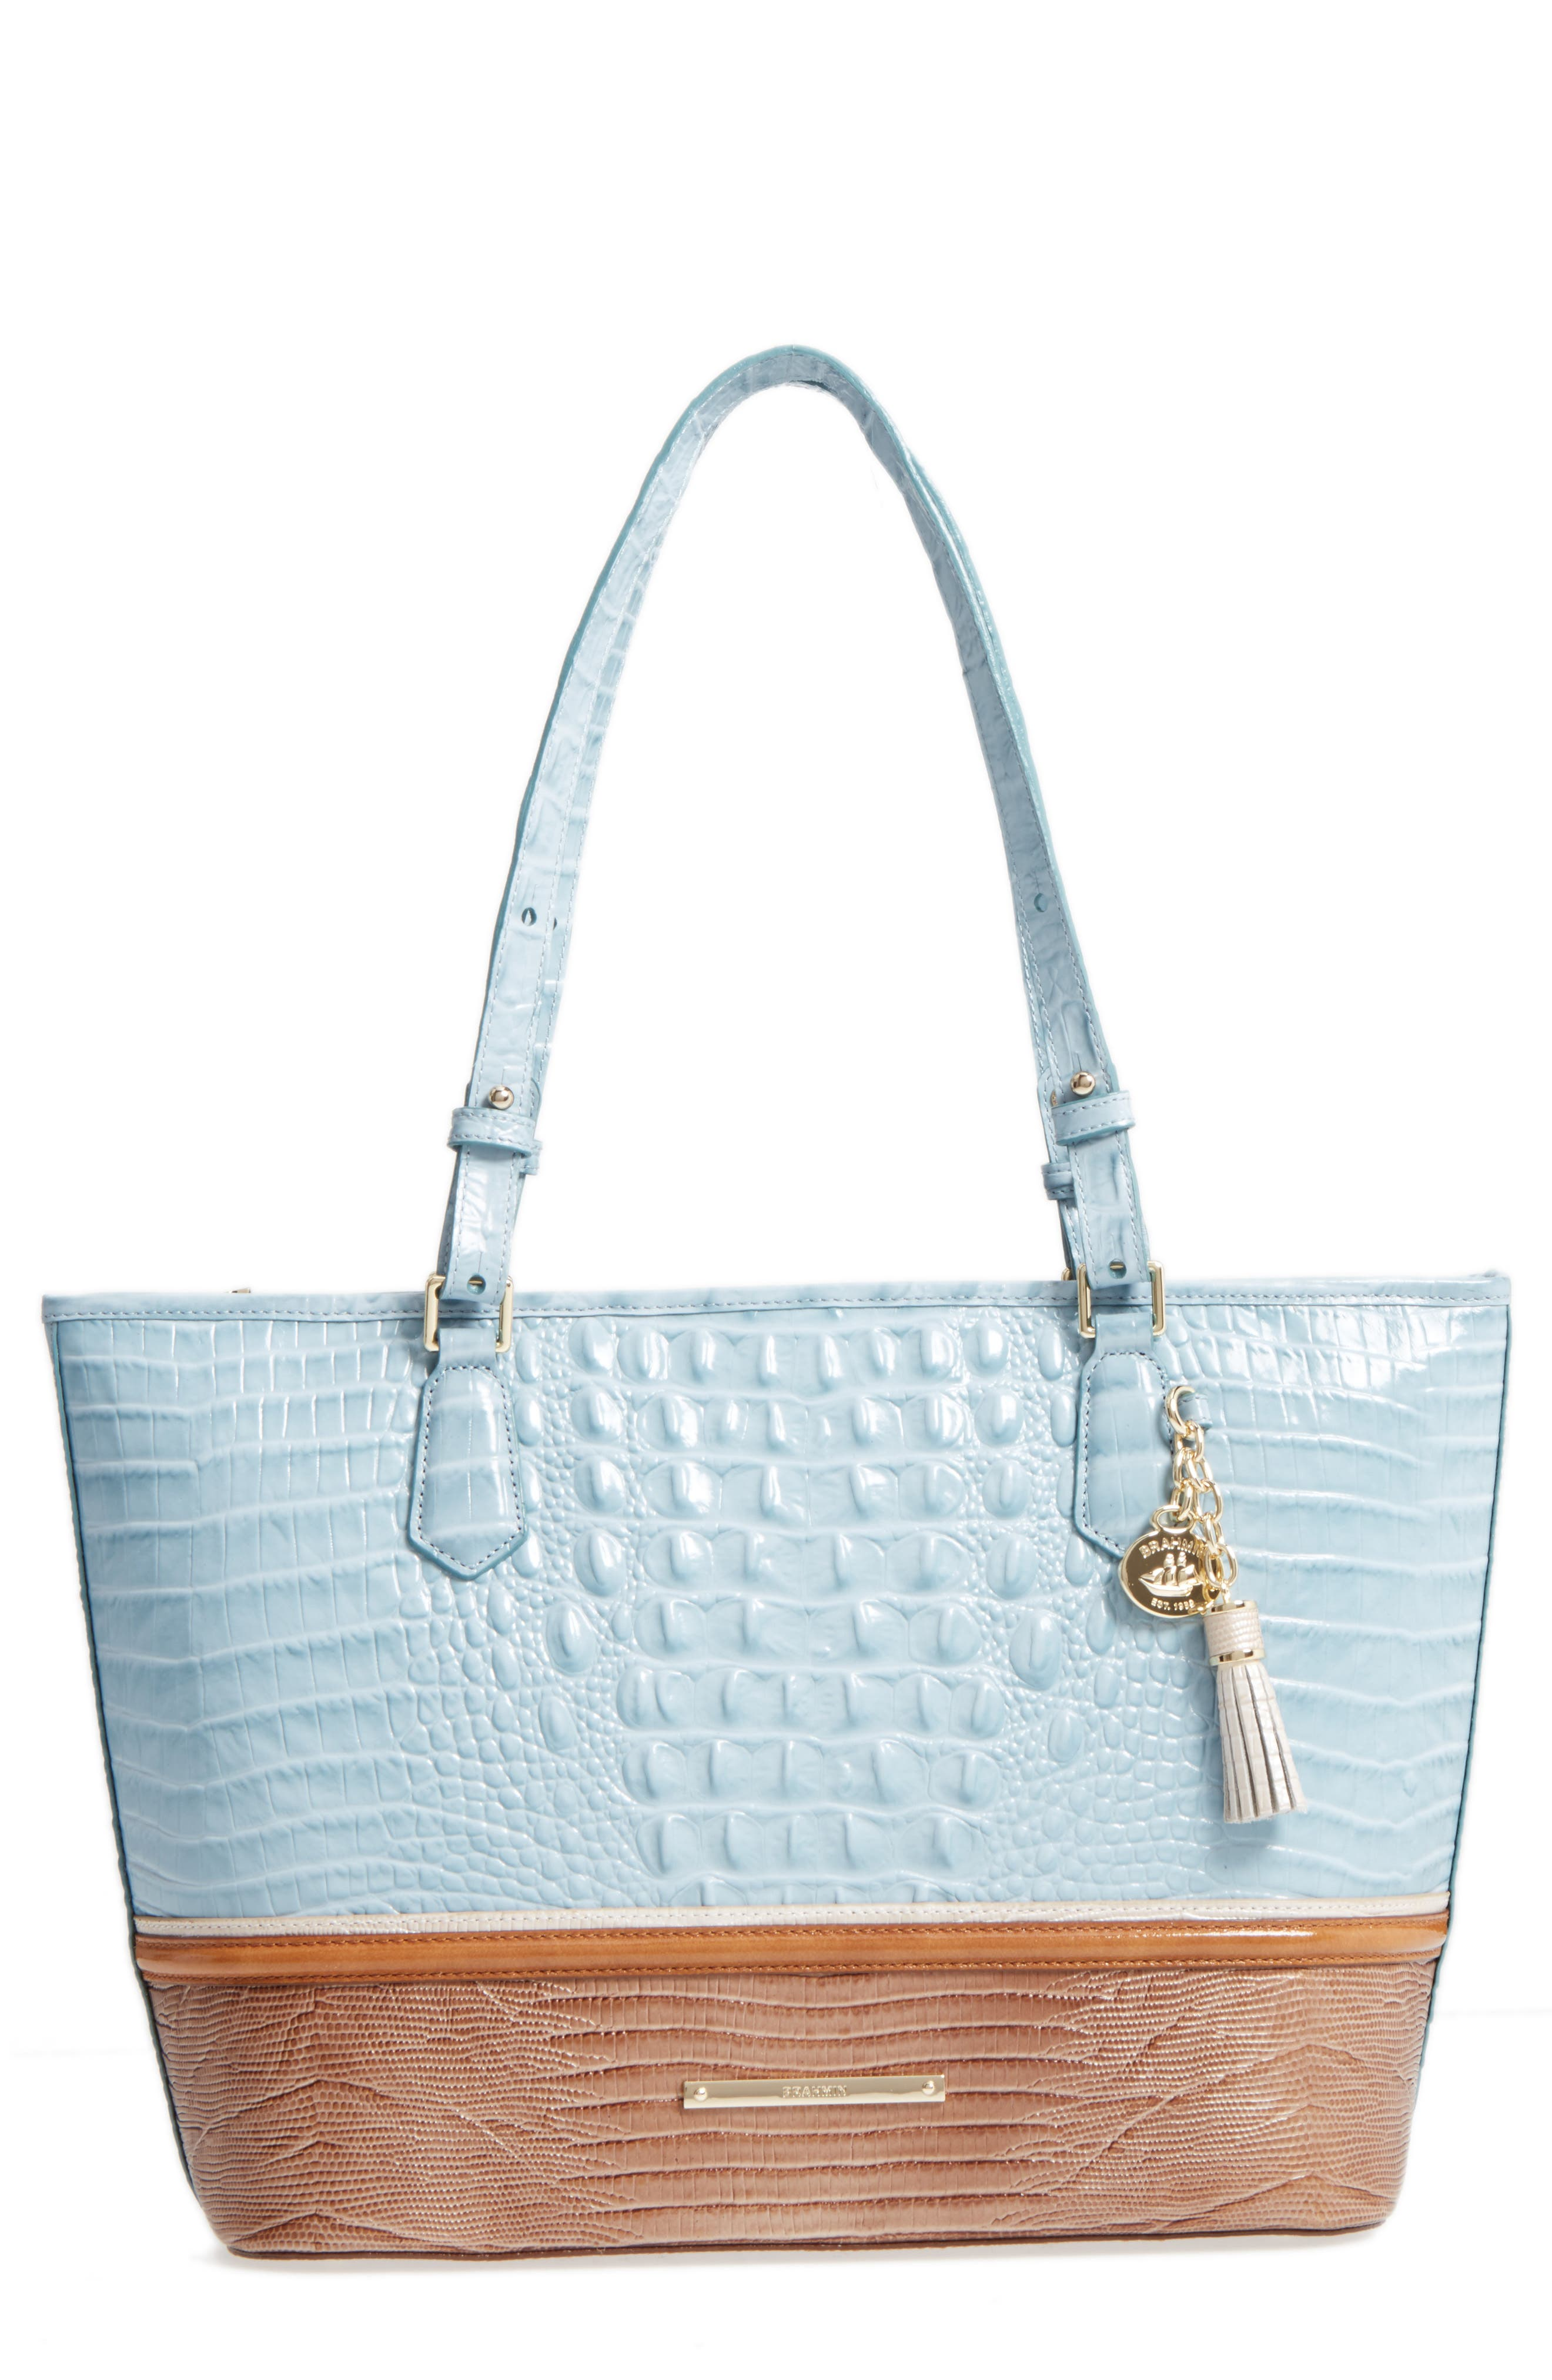 Medium Asher Leather Tote,                         Main,                         color, 400